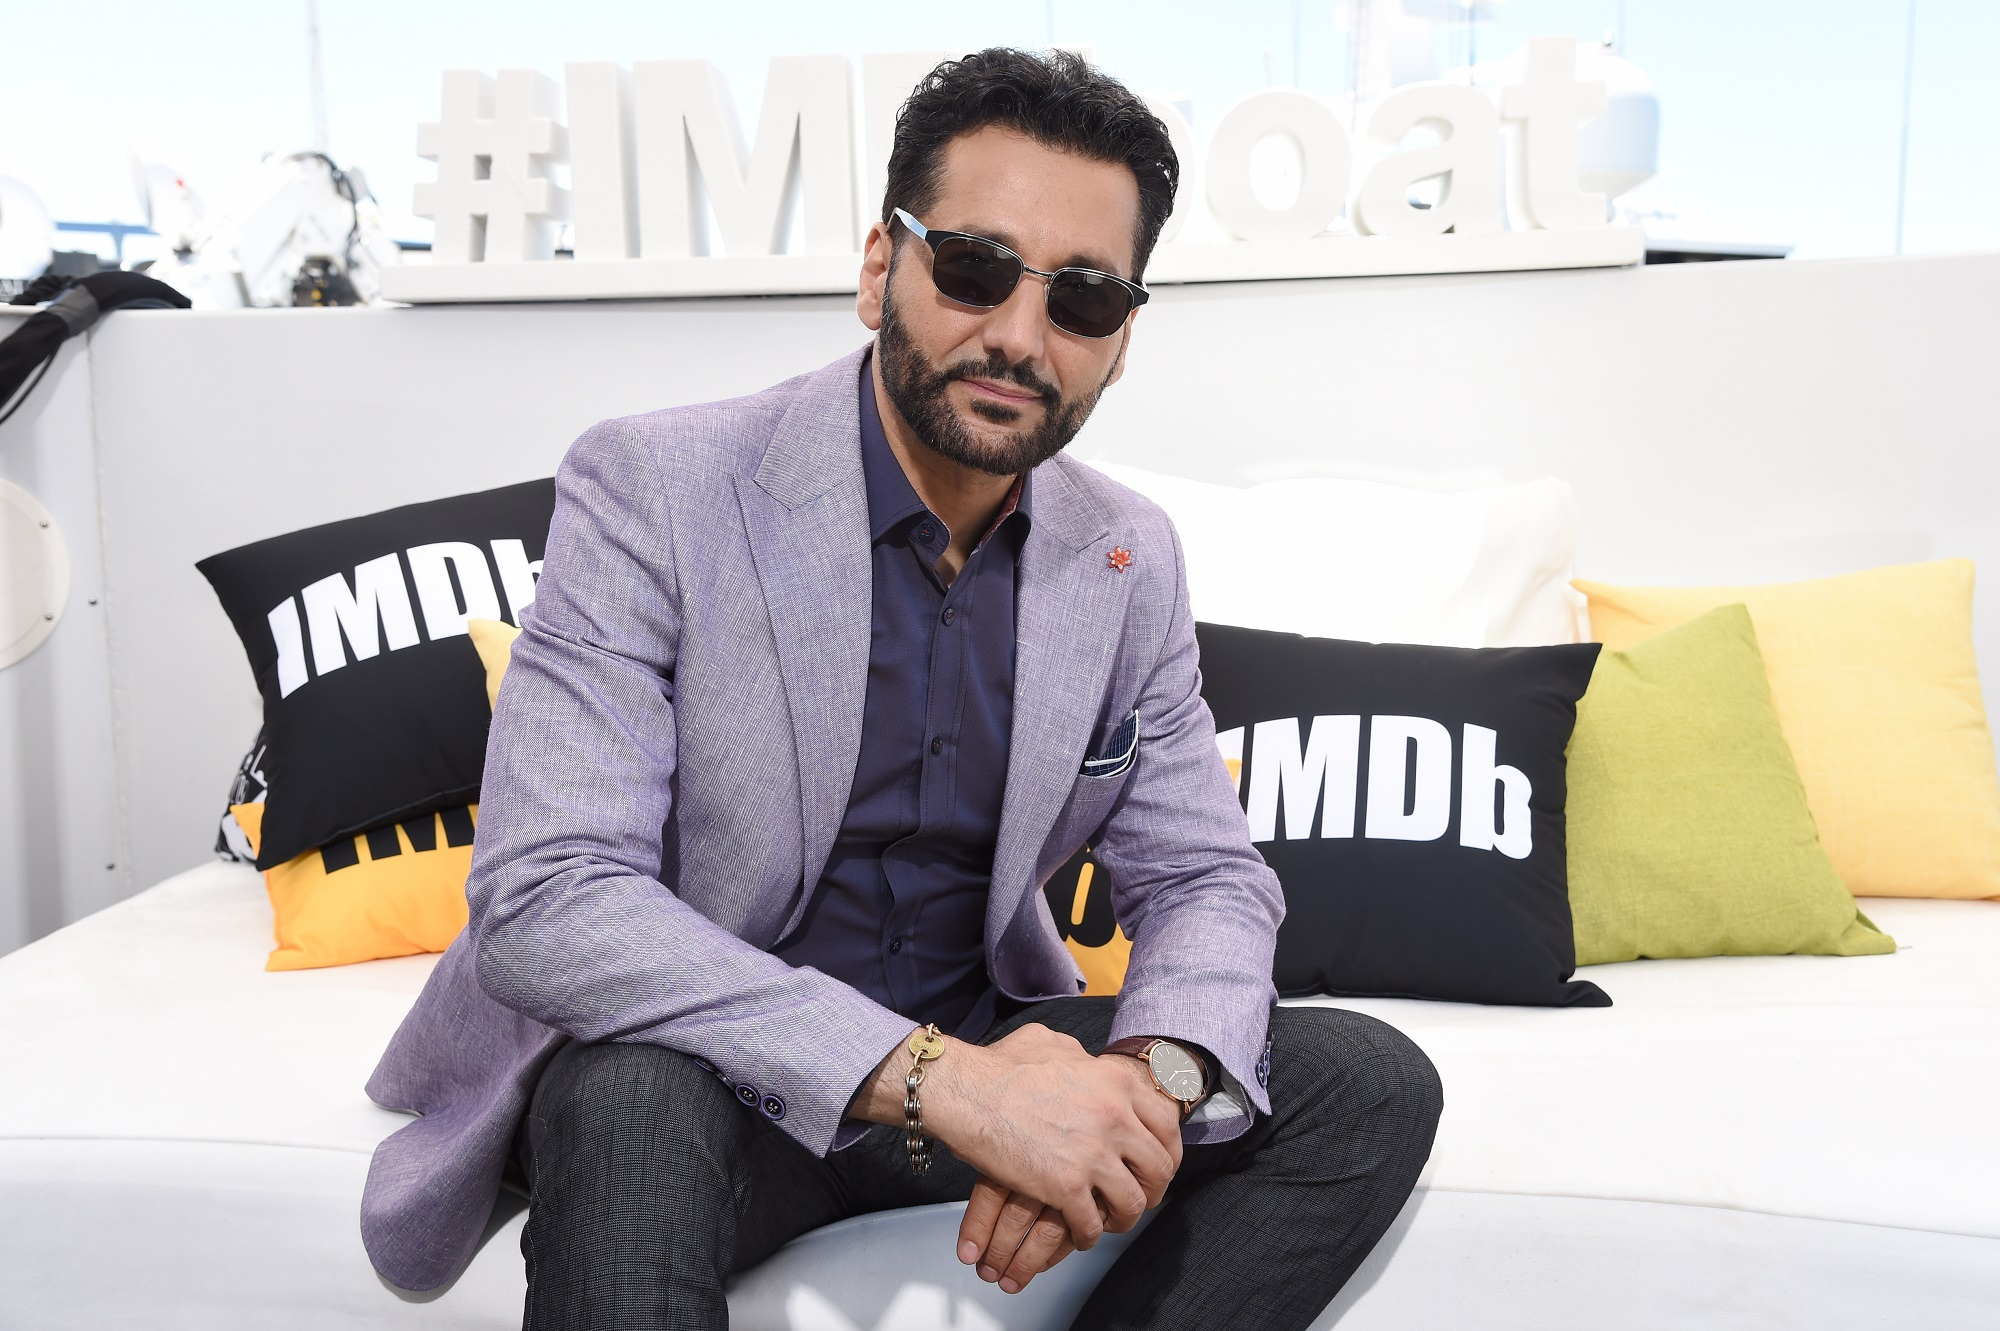 The Expanse cast member Cas Anvar was removed from The Expanse Season 6